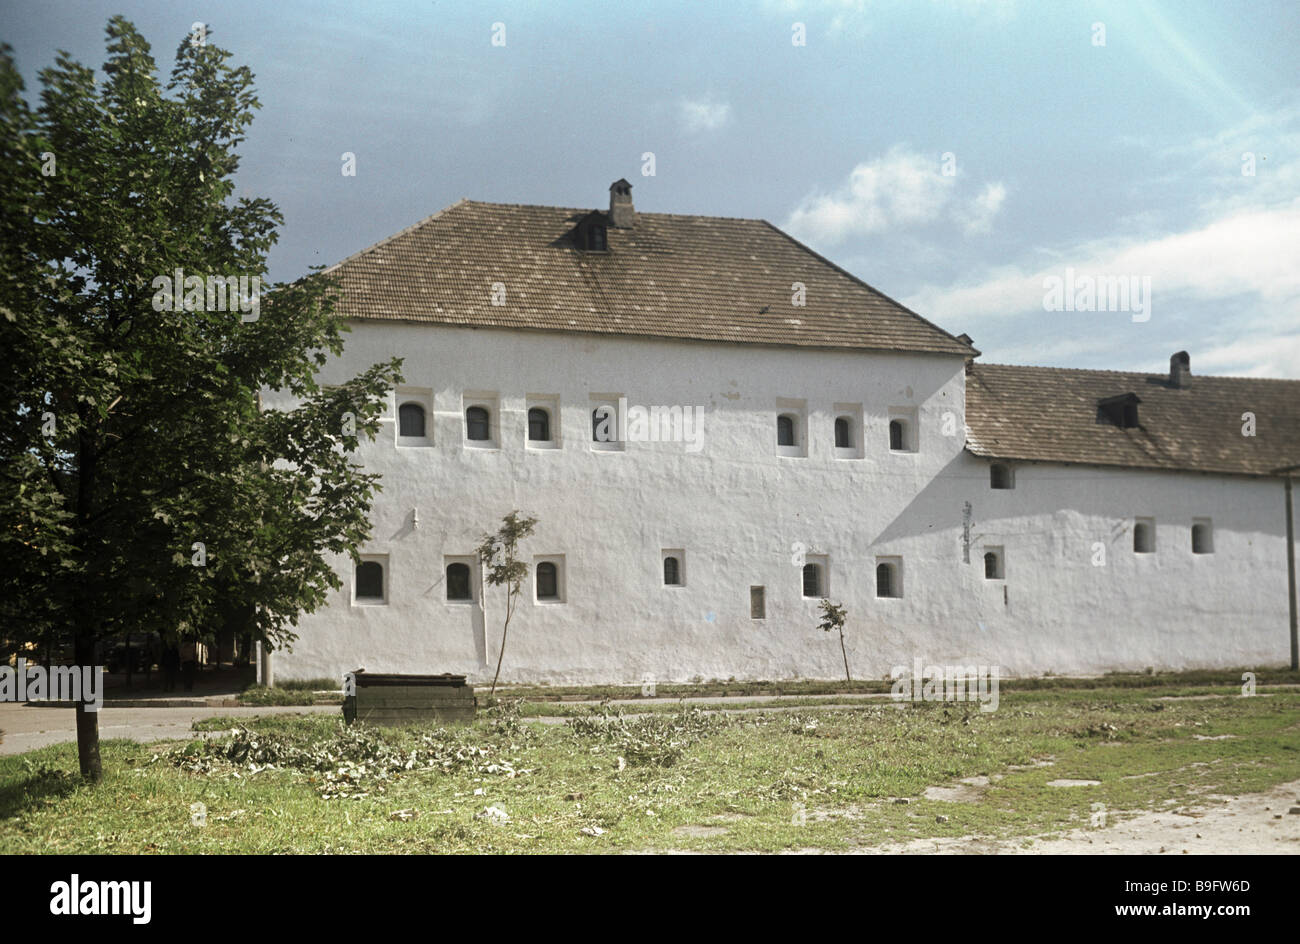 The seventeenth century Pogankiny Chambers in the city of Pskov - Stock Image